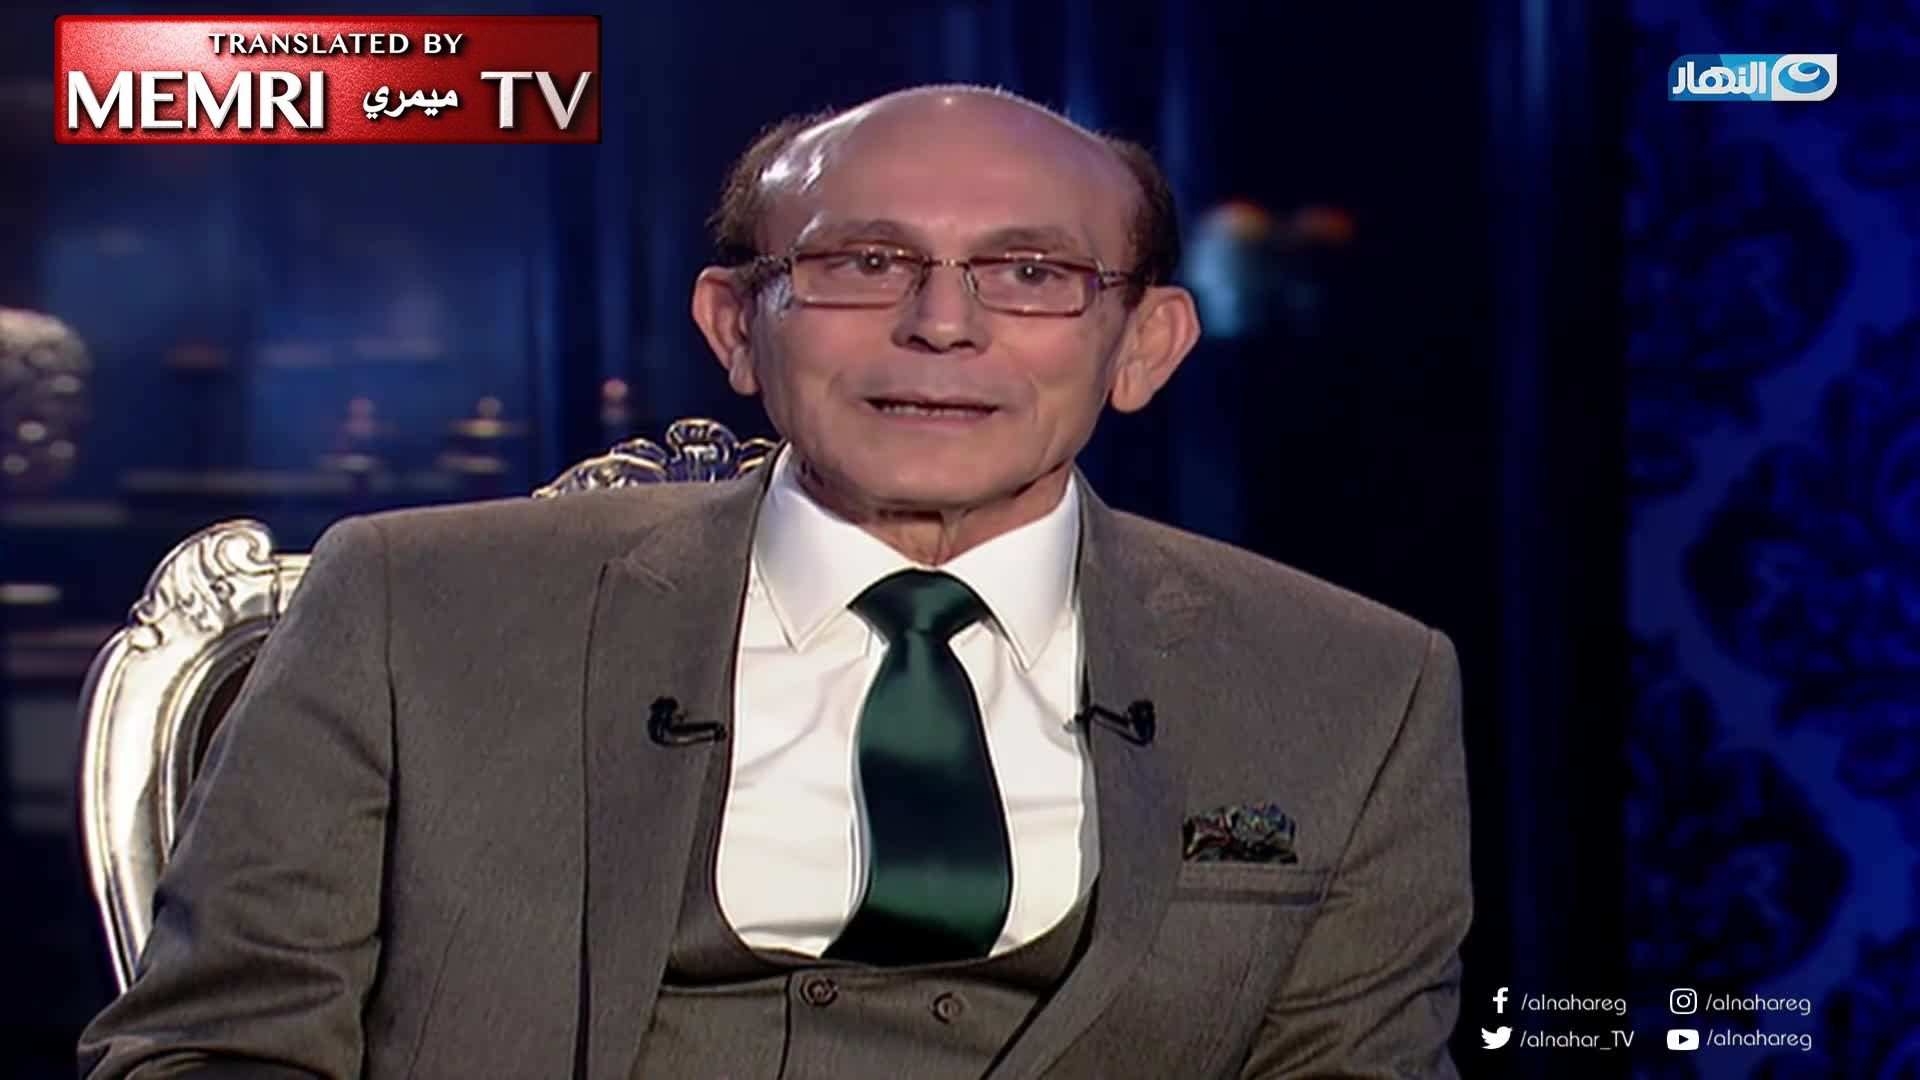 Egyptian Actor Mohamed Sobhi Says That After Airing of Antisemitic Show He Starred in, Sales of Protocols of the Elders of Zion Skyrocketed in Egypt